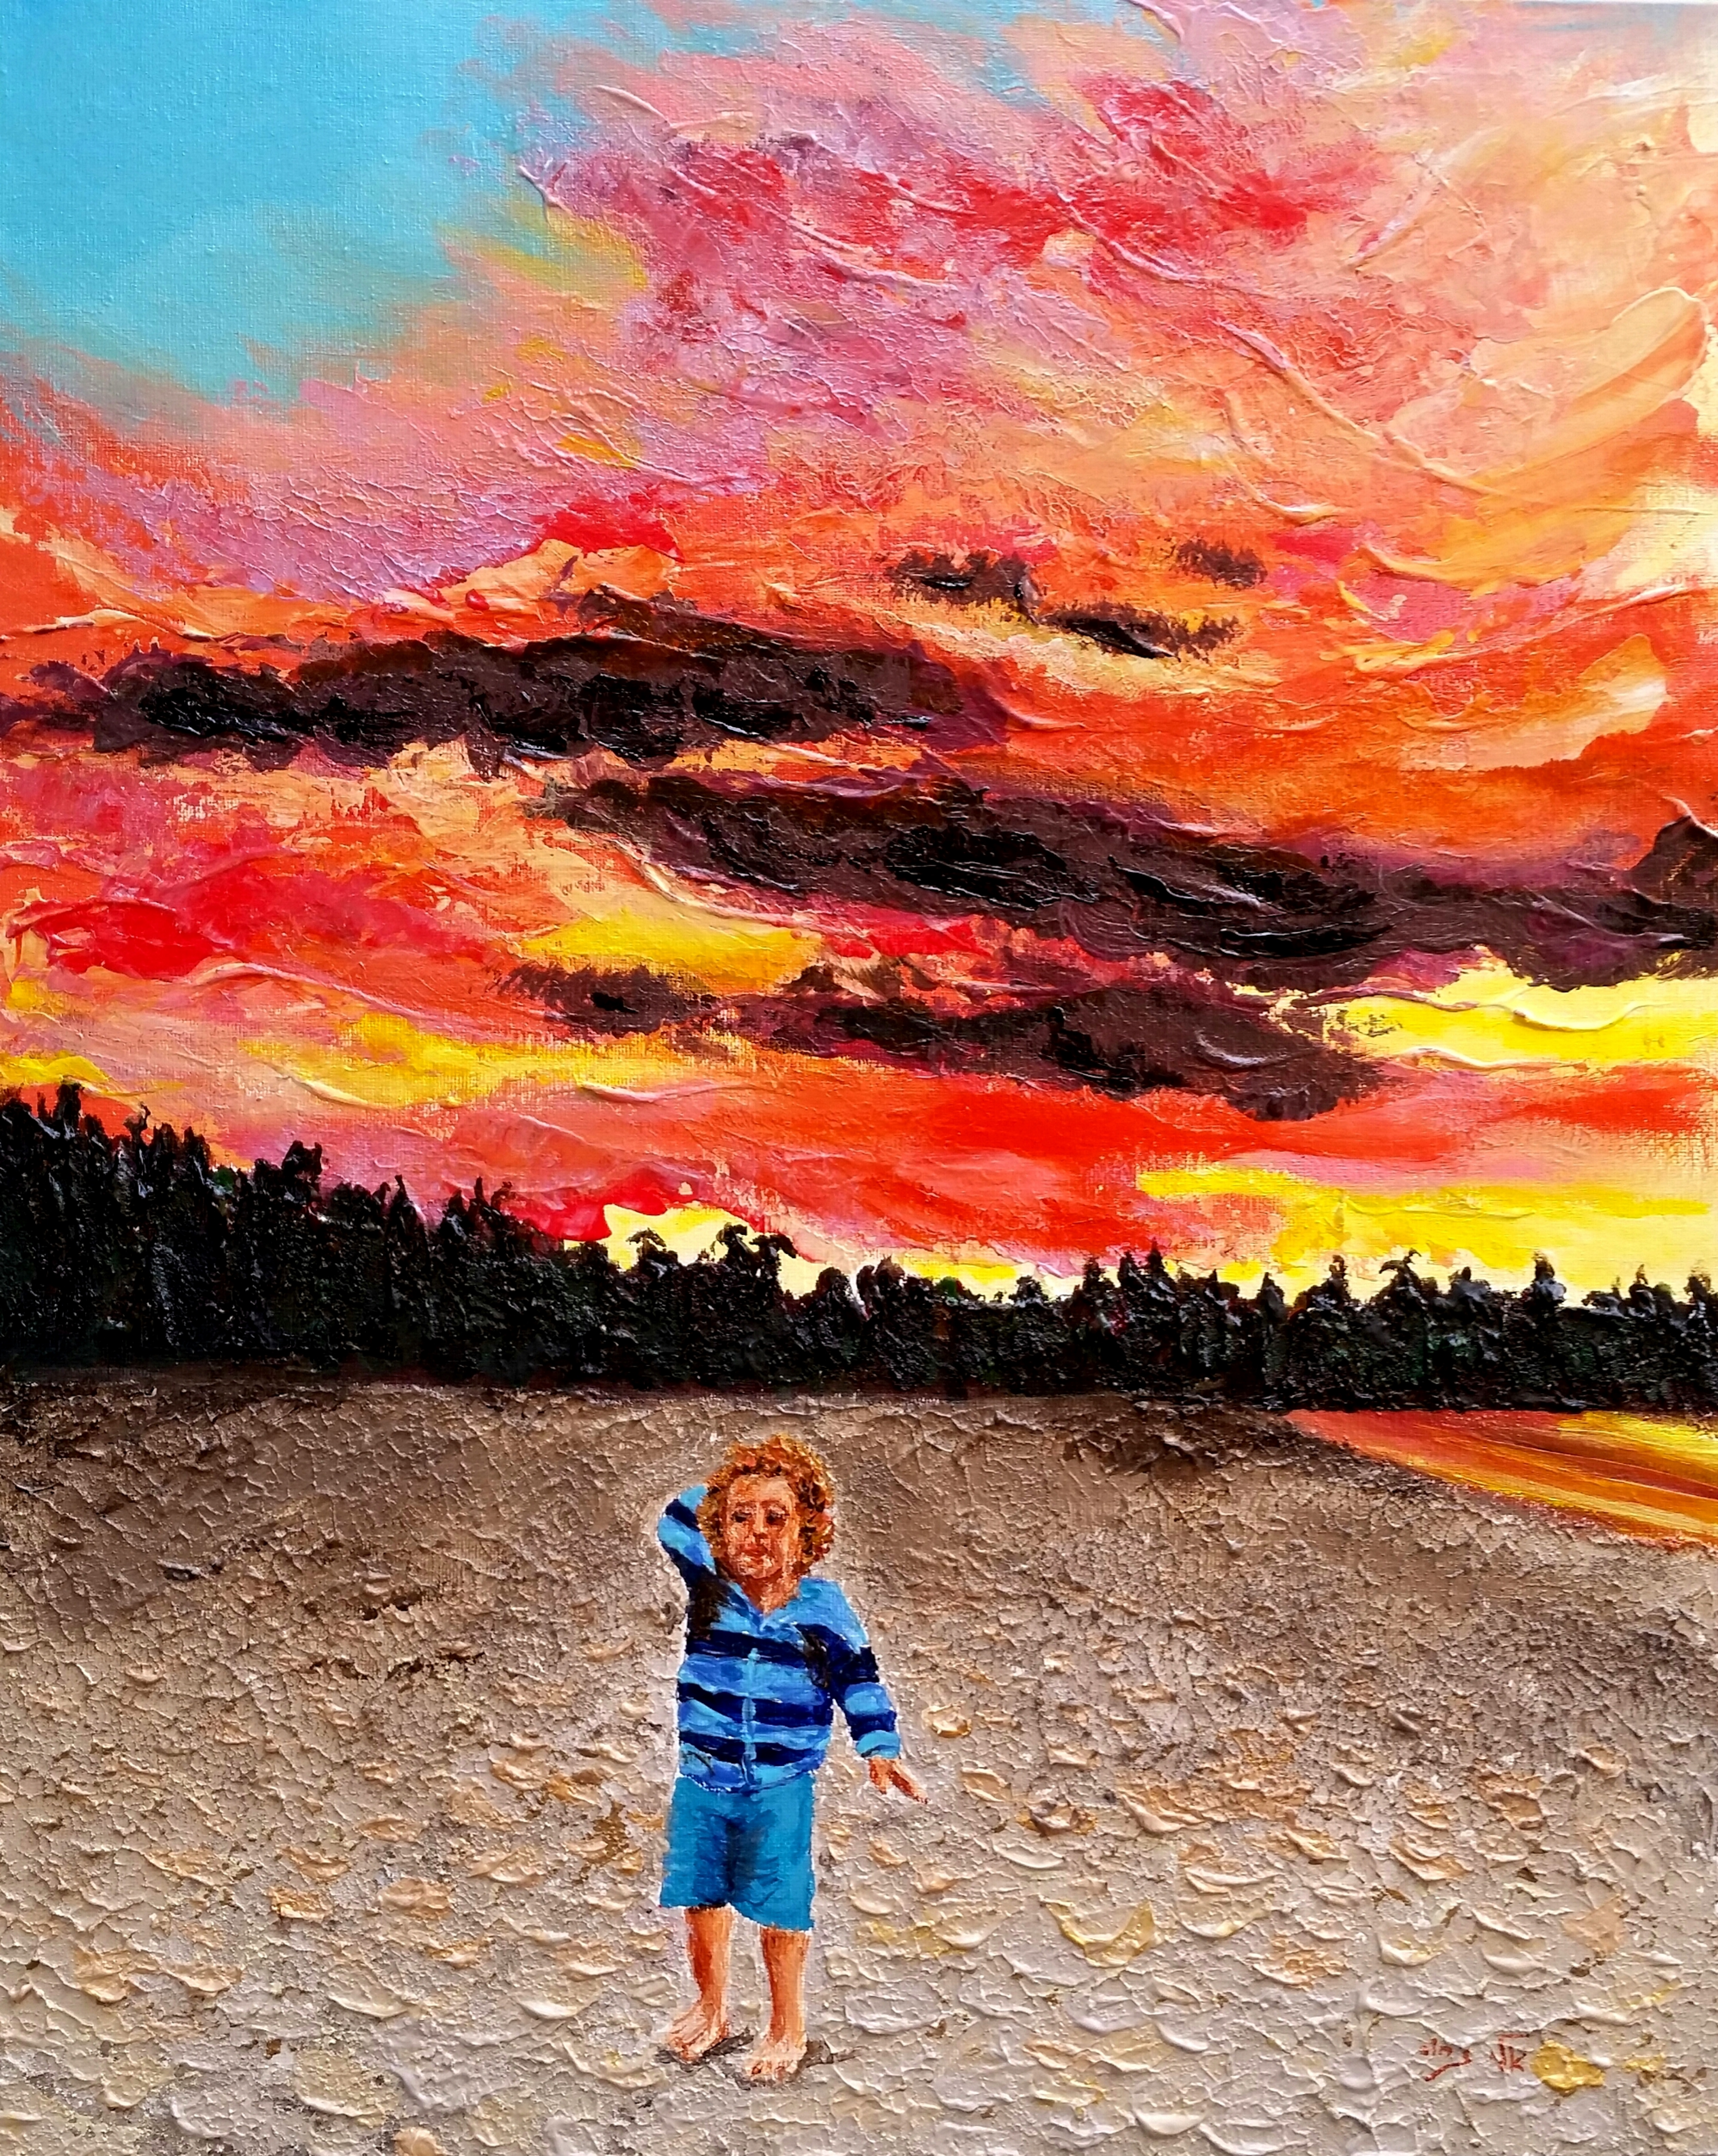 Clouds and colors blend at sunset  - Acrylic